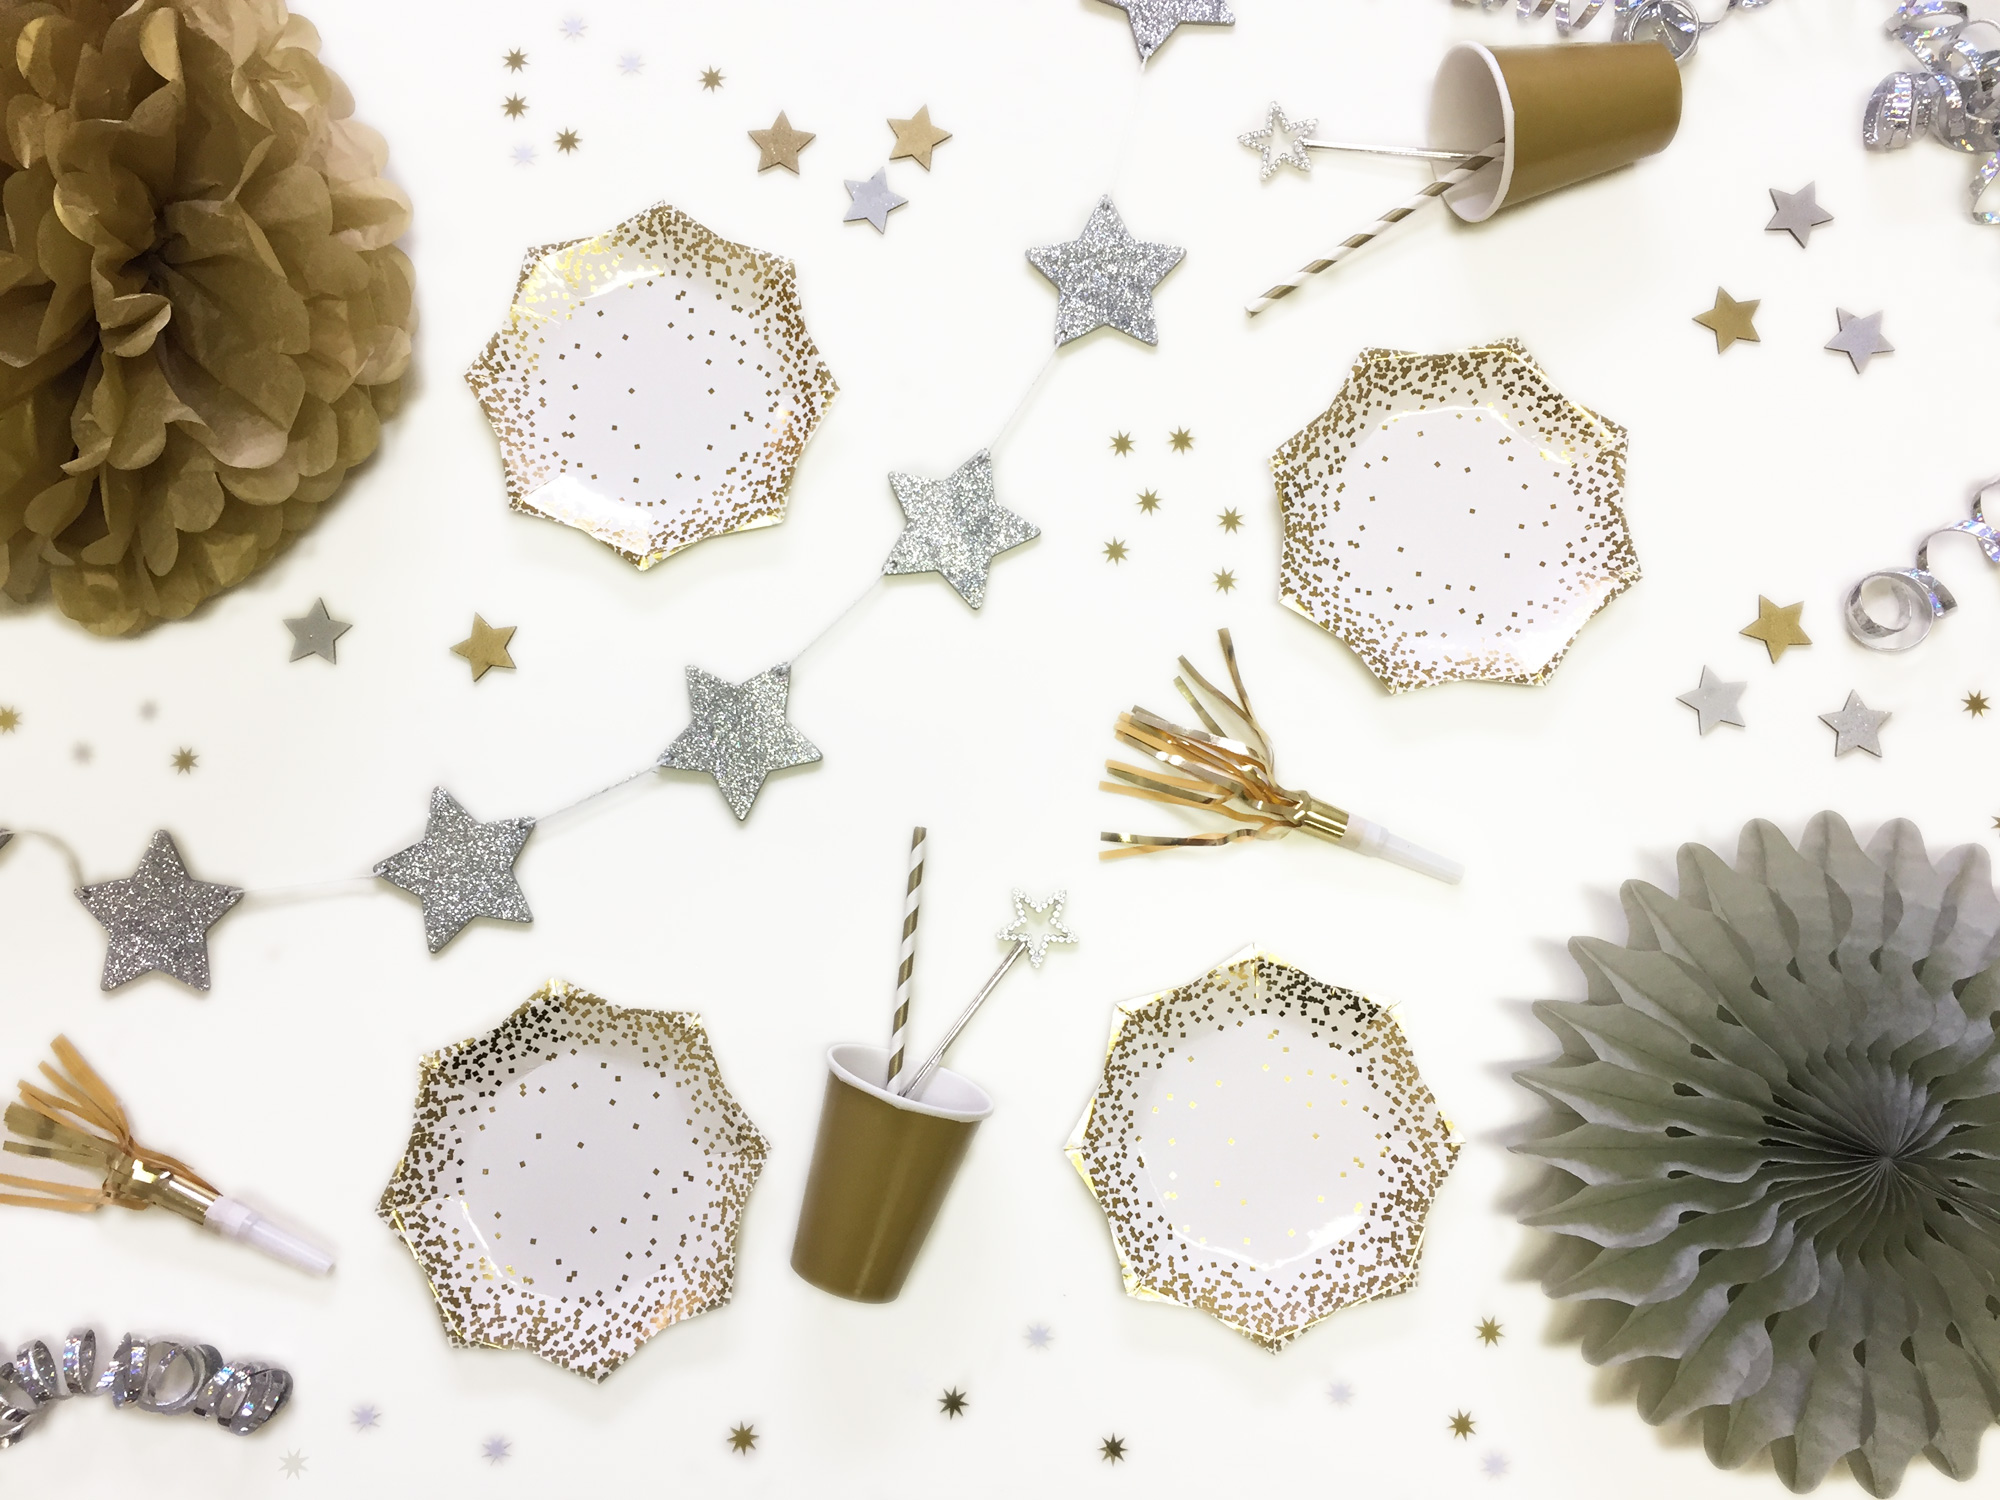 Silver and gold metallic party table display